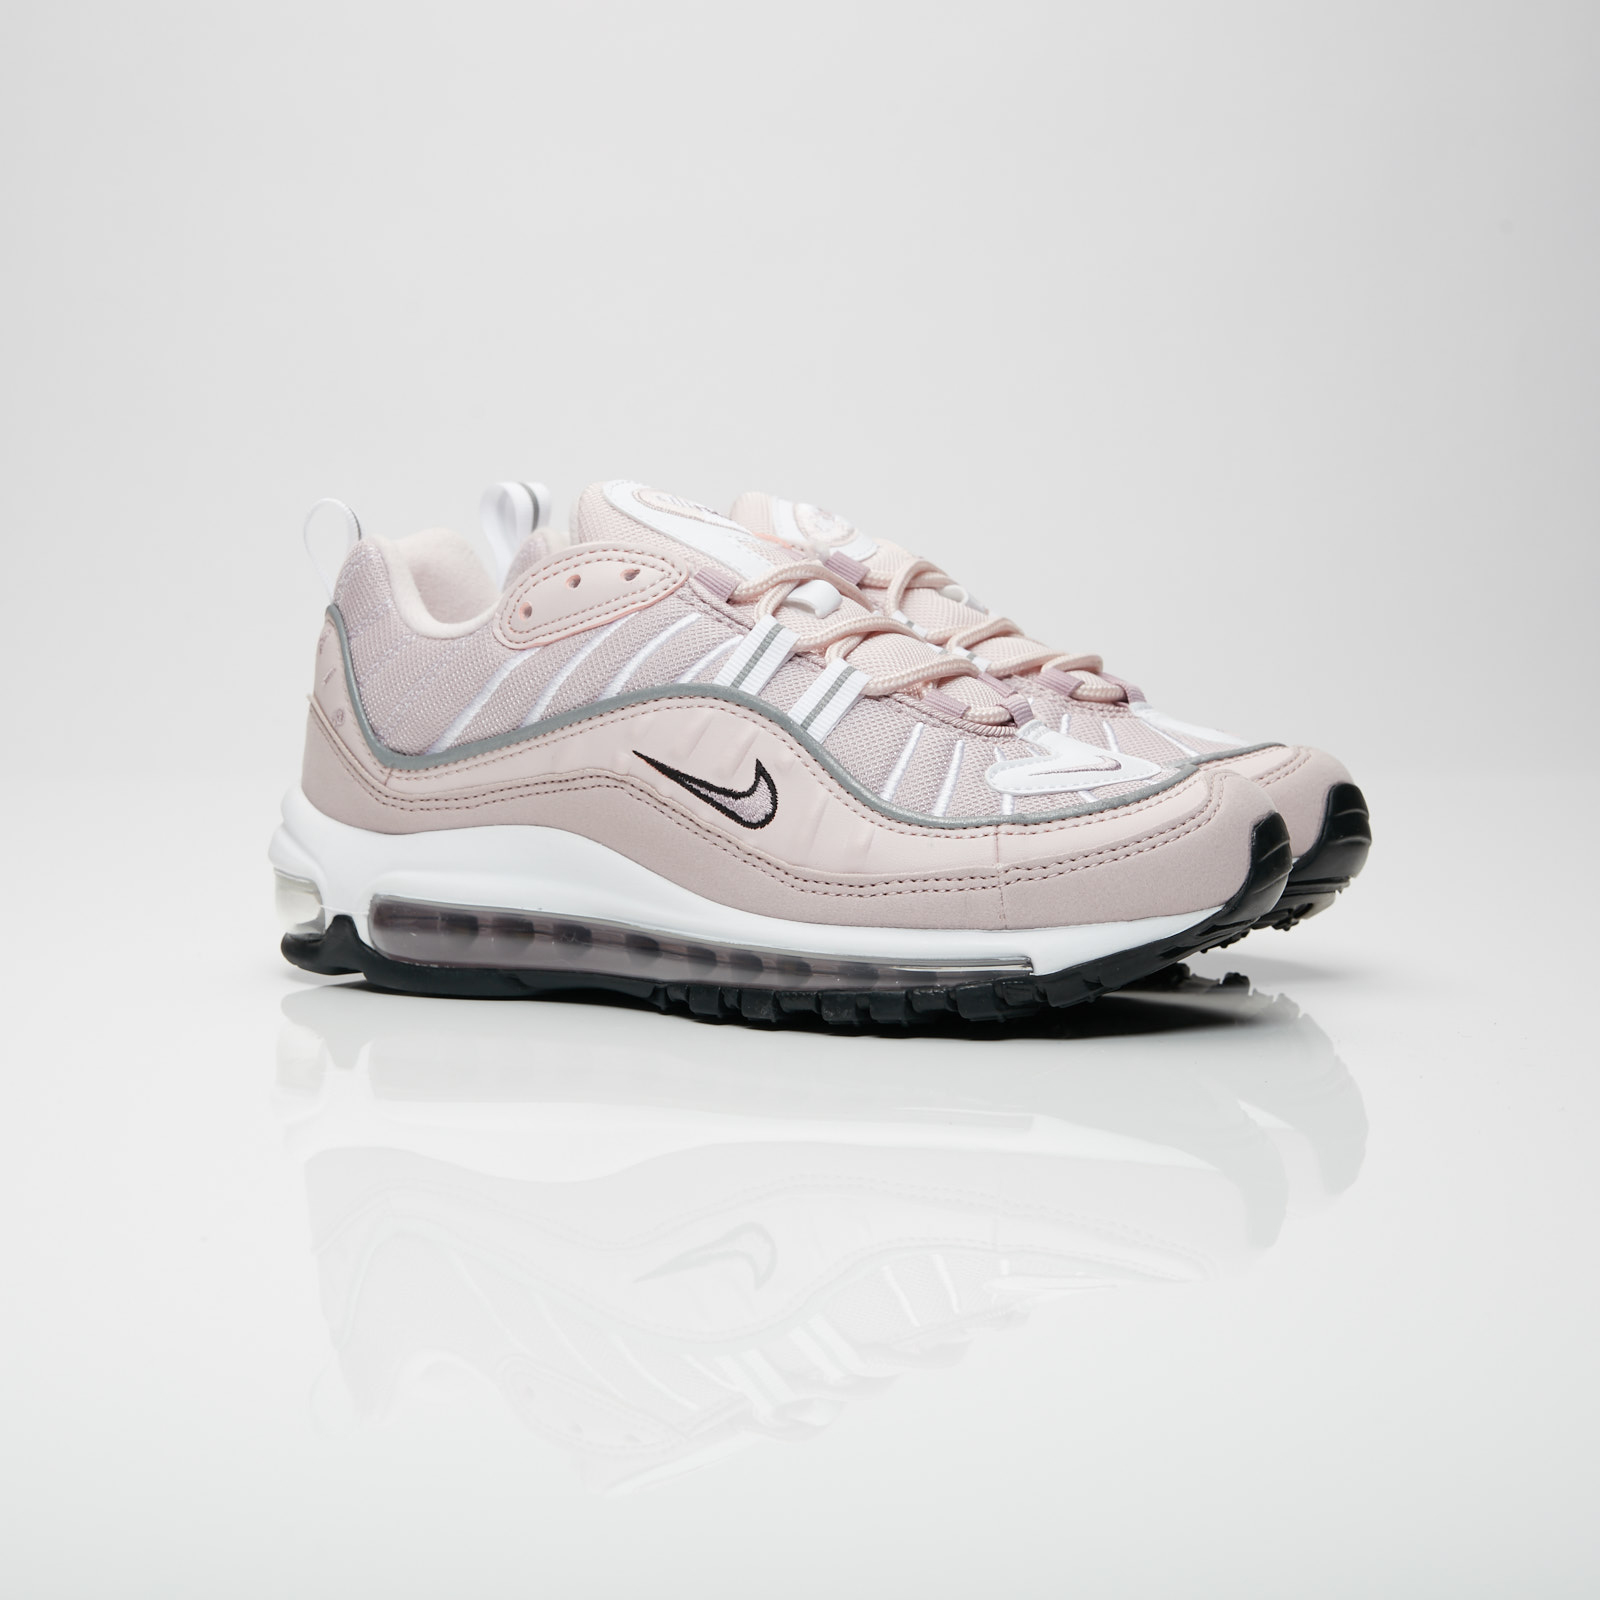 new product 7c0f7 c2e37 Nike Sportswear Wmns Air Max 98